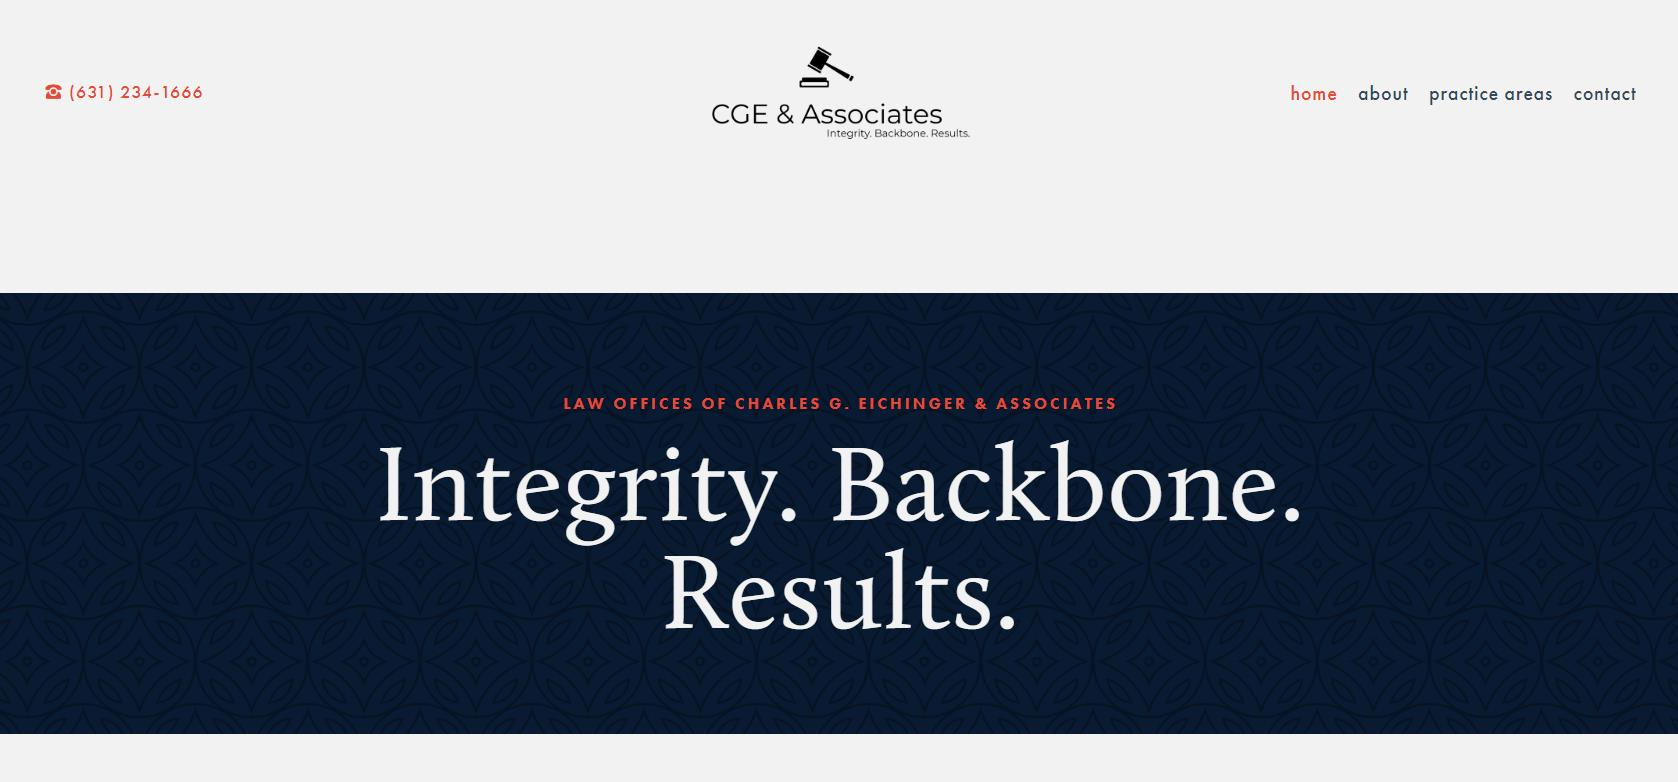 Law Offices of Charles G. Eichinger & Associates, P.C. Launches New Website